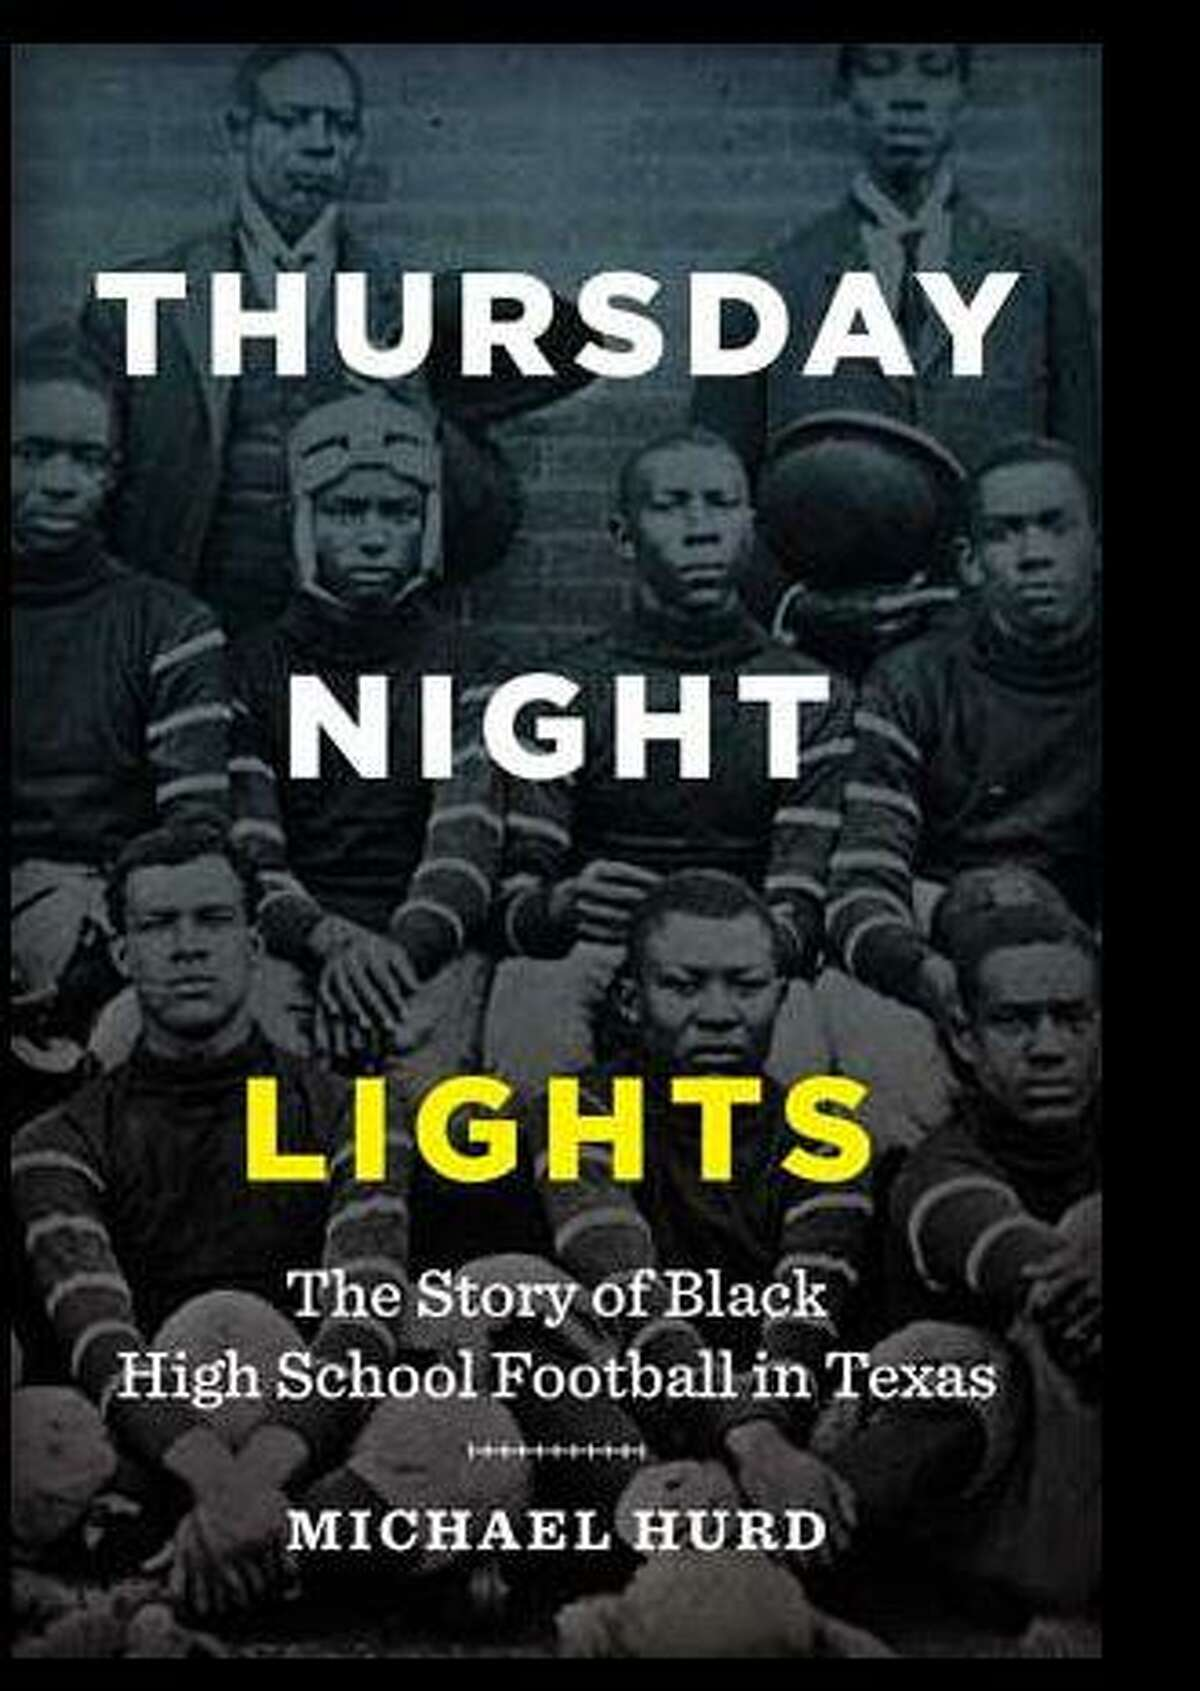 """Author Michael Hurd wrote the book """"Thursday Night Lights,"""" which is the definitive history of Black high school football in Texas."""